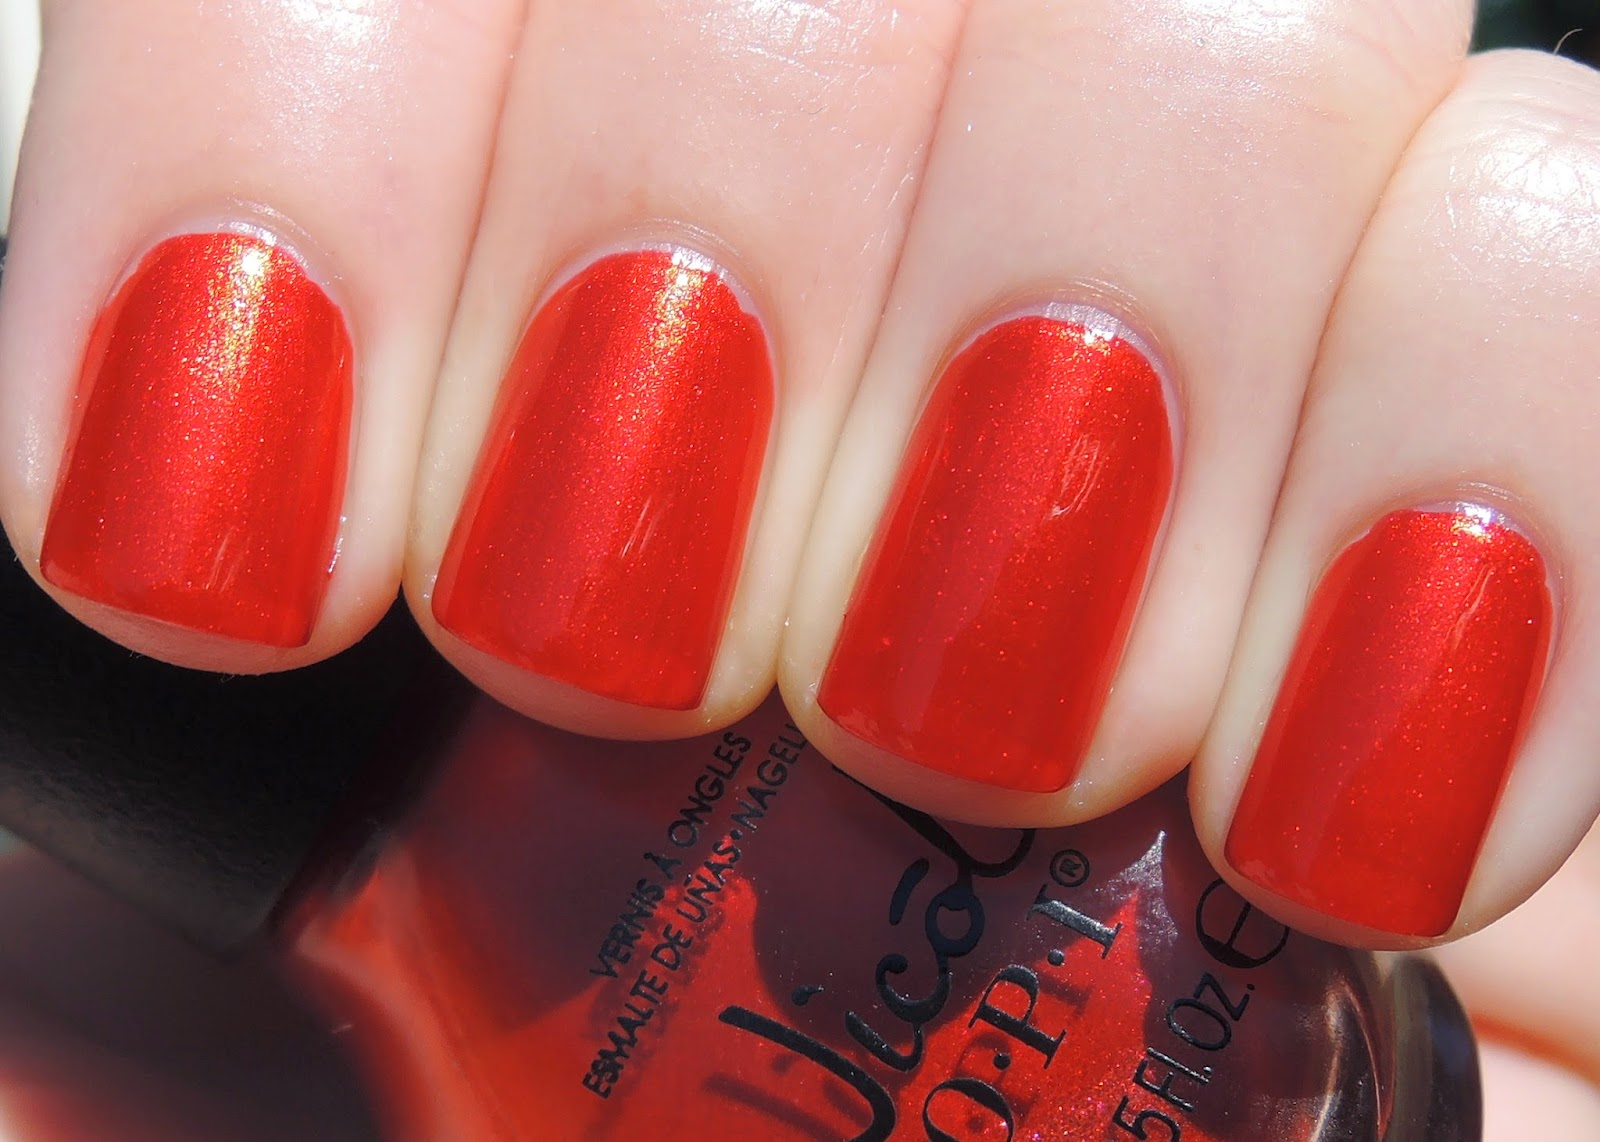 NOPI Always a Classic Coca-Cola swatch Nicole by OPI